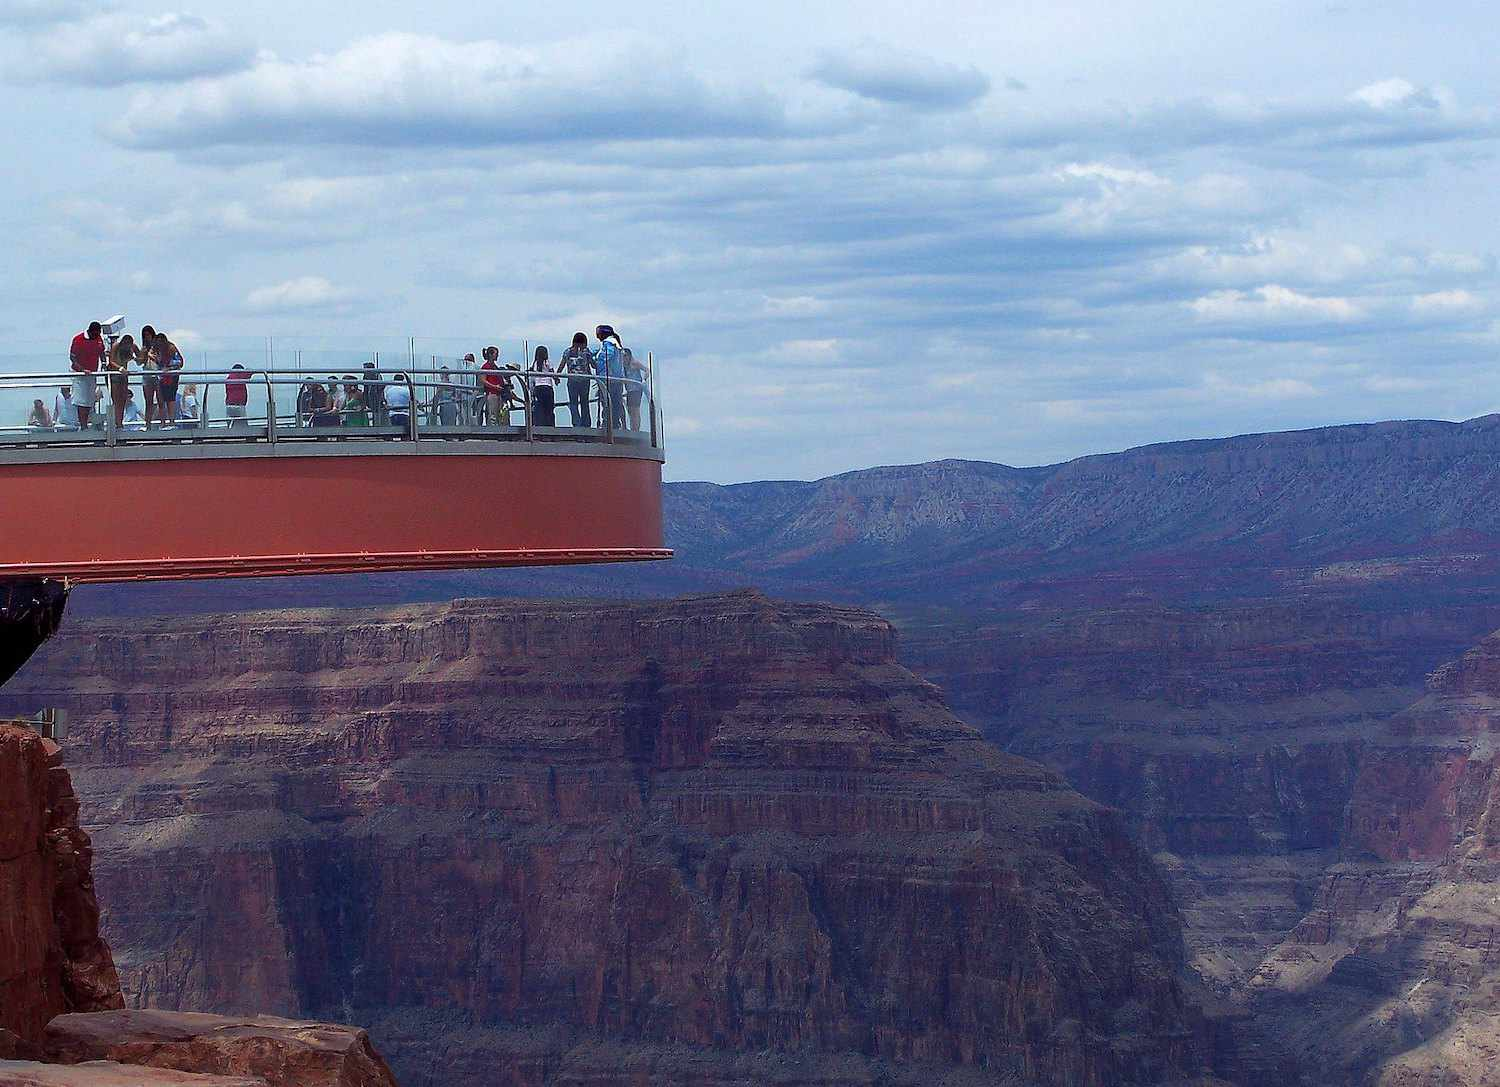 Visitors look out from the Grand Canyon Skywalk out to the canyon below.